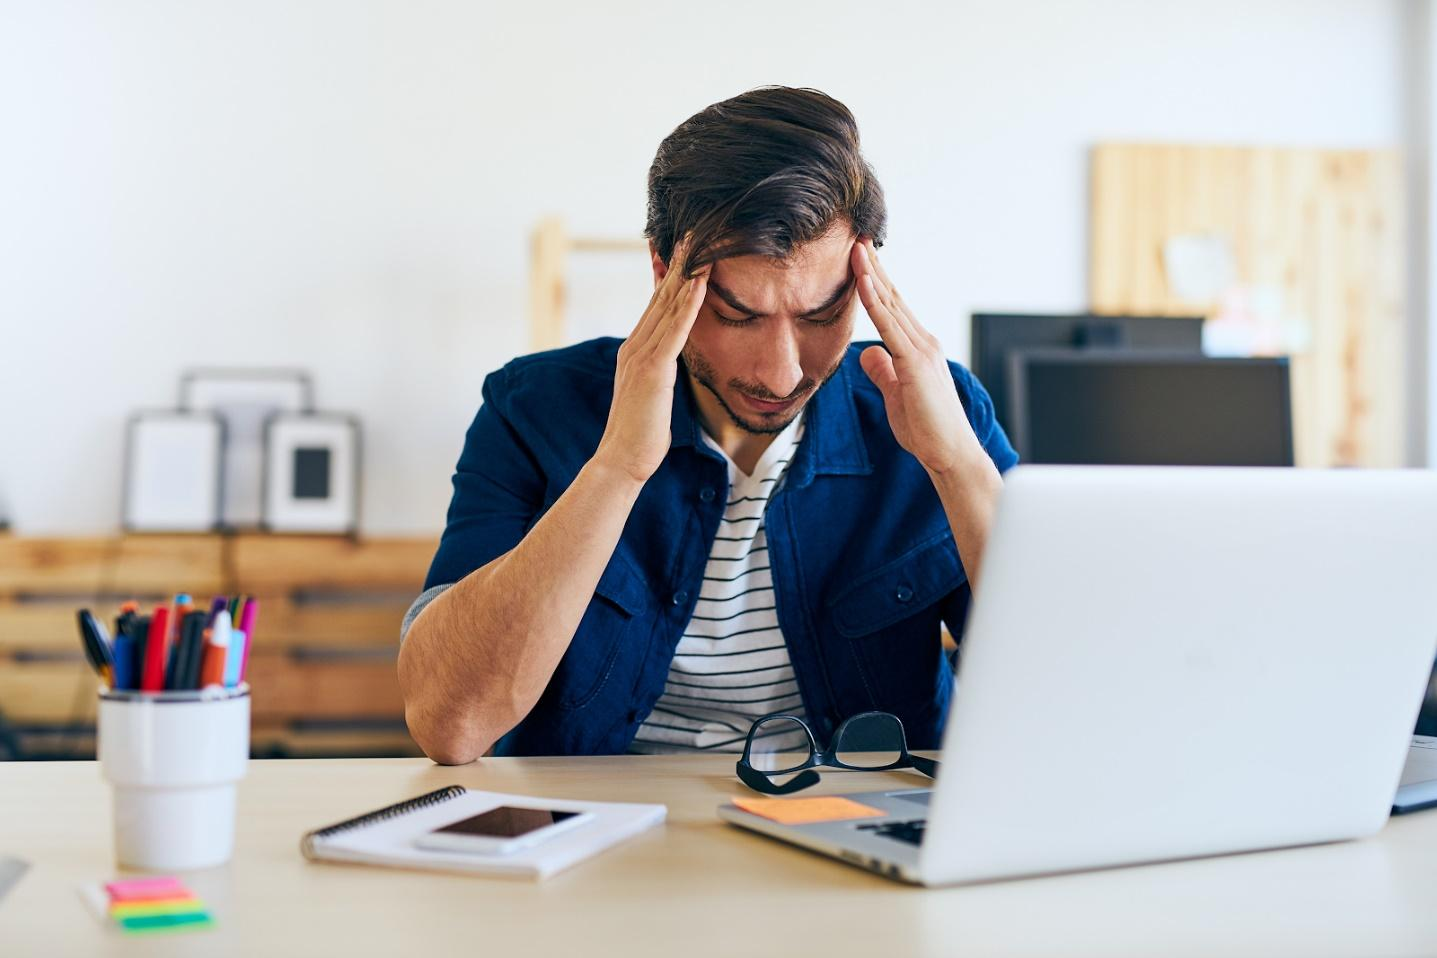 Frustrated at the computer because of licensing models